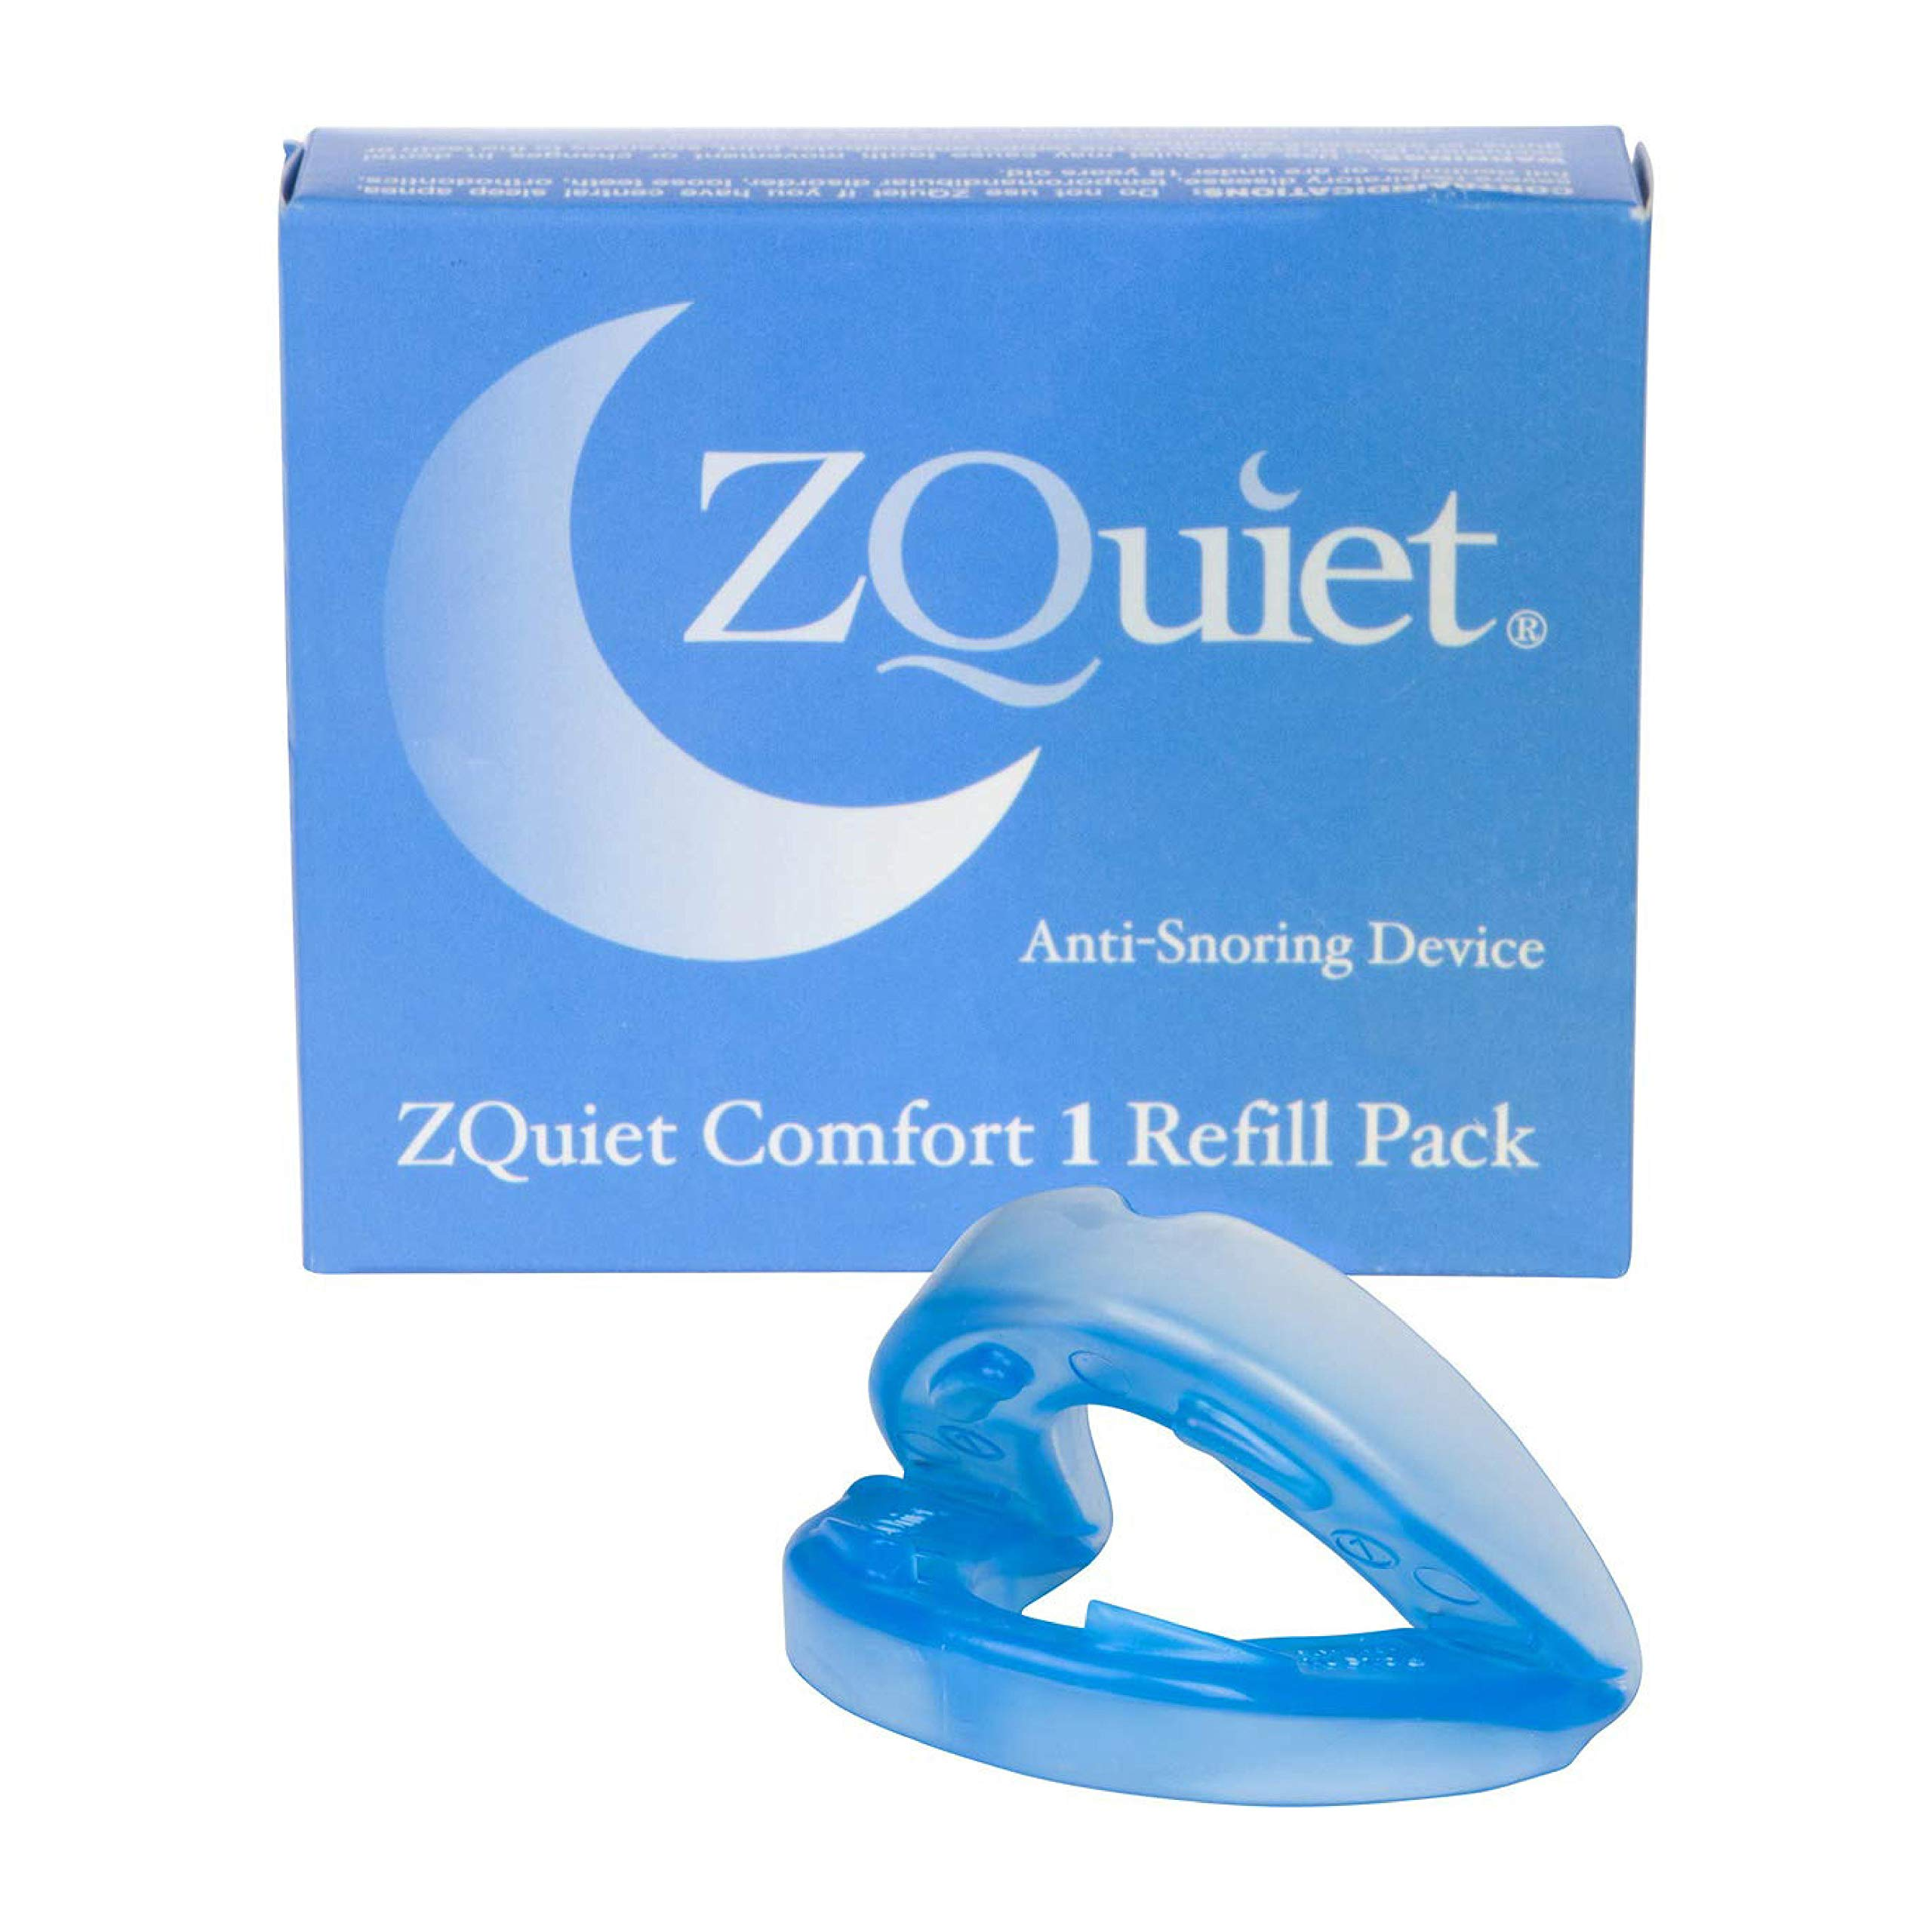 ZQuiet REFILL Comfort Size #1 Mouthpiece, Single Device by ZQuiet